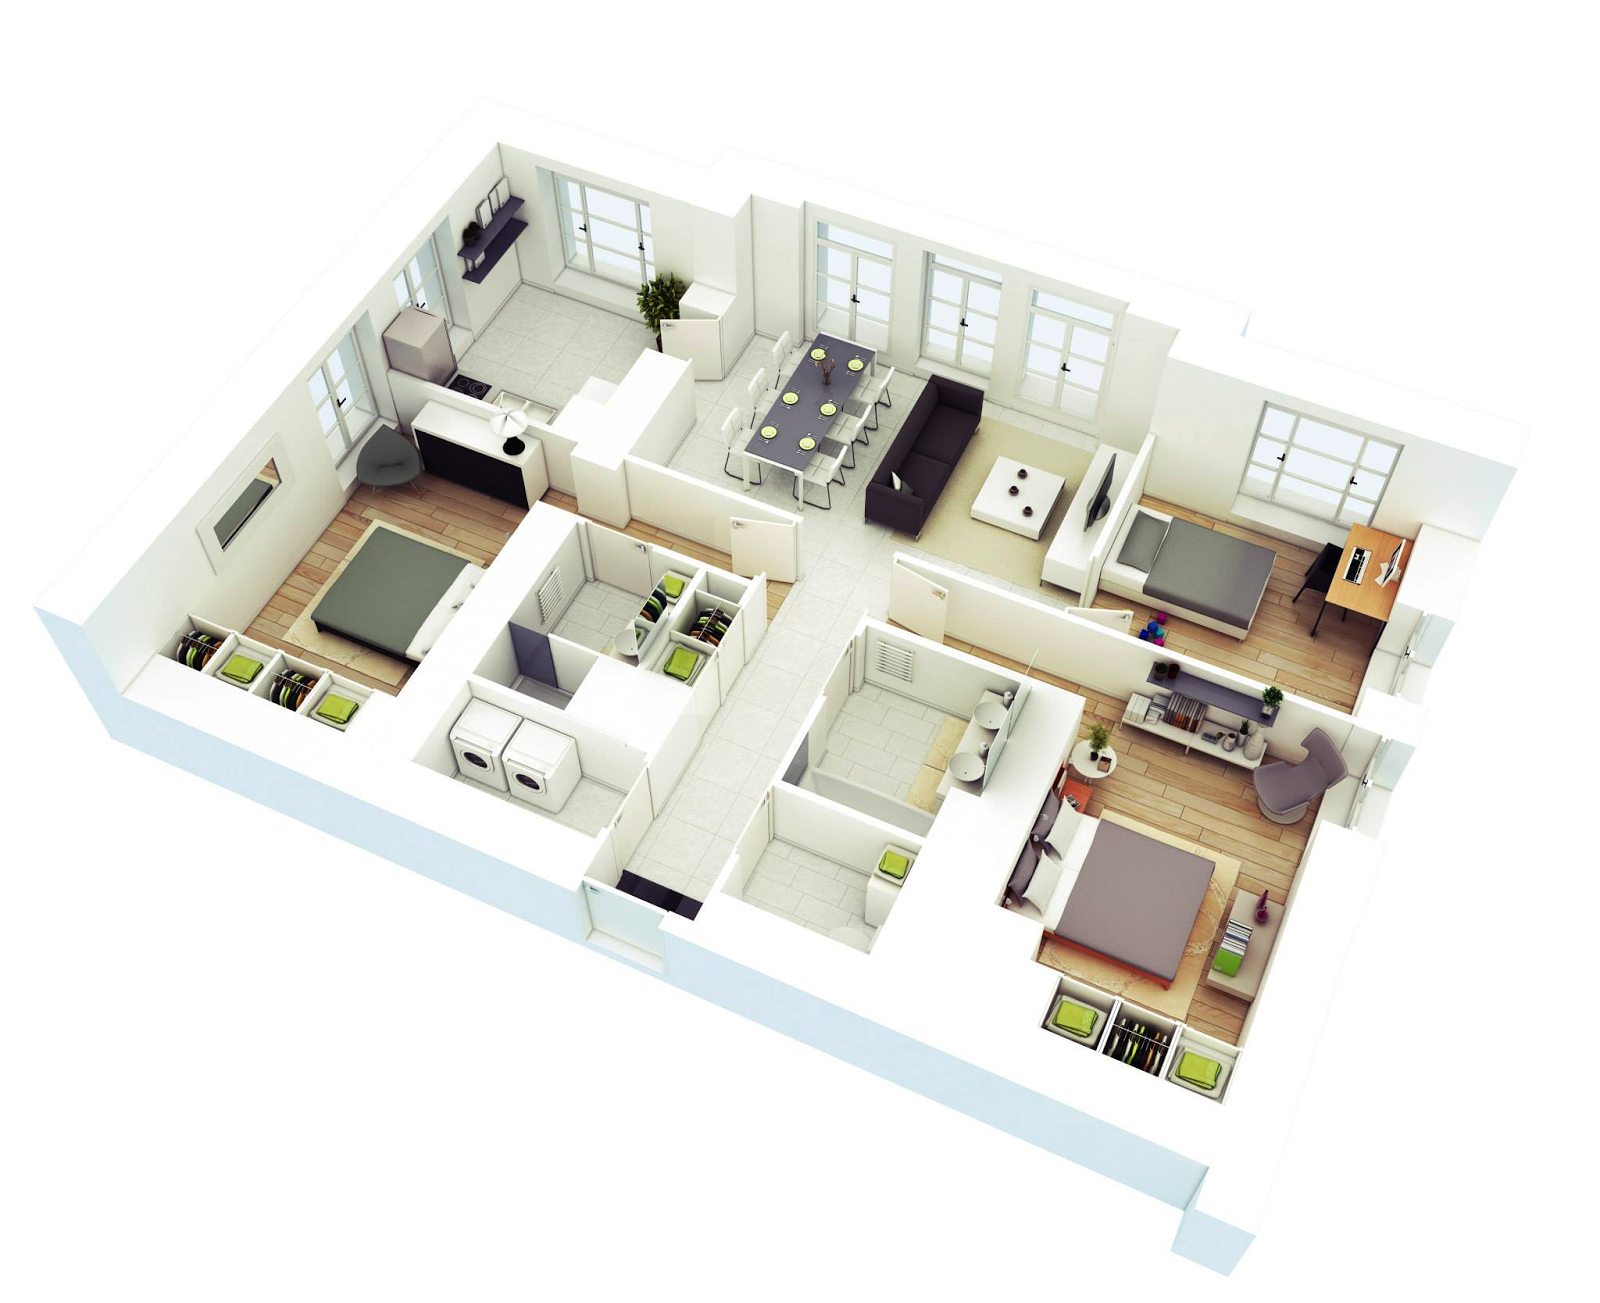 view free 3 d designs here of 2 bedroom house related photos - 3d Home Architect Plans Free